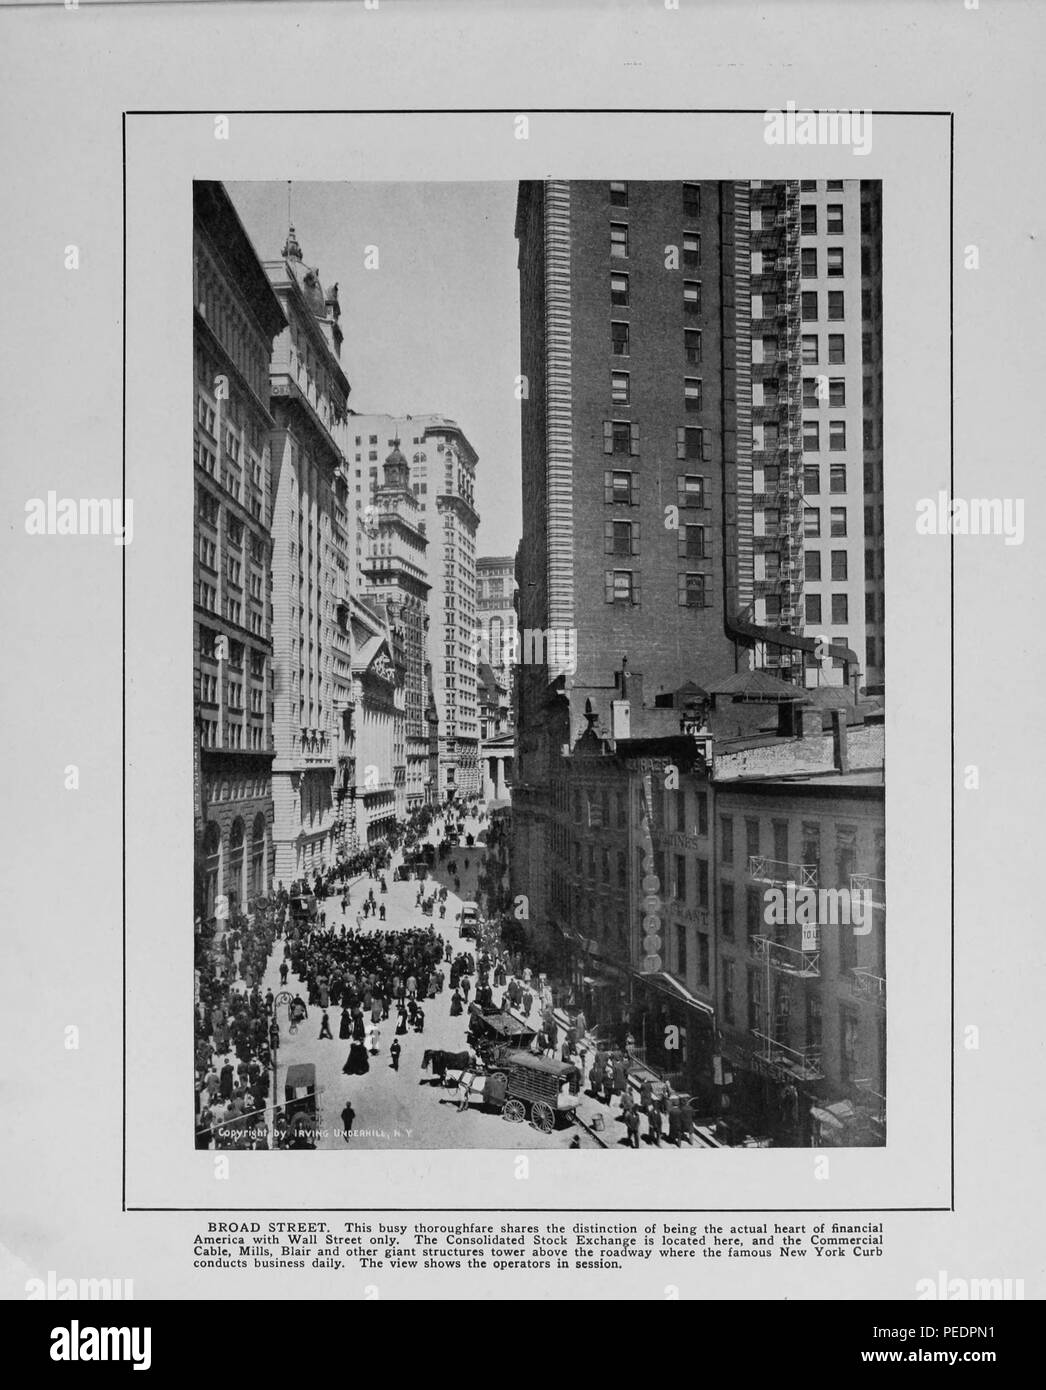 Broad Street near Wall Street, crowded with people and horse wagons, Manhattan, New York, 1912. Courtesy Internet Archive. () - Stock Image